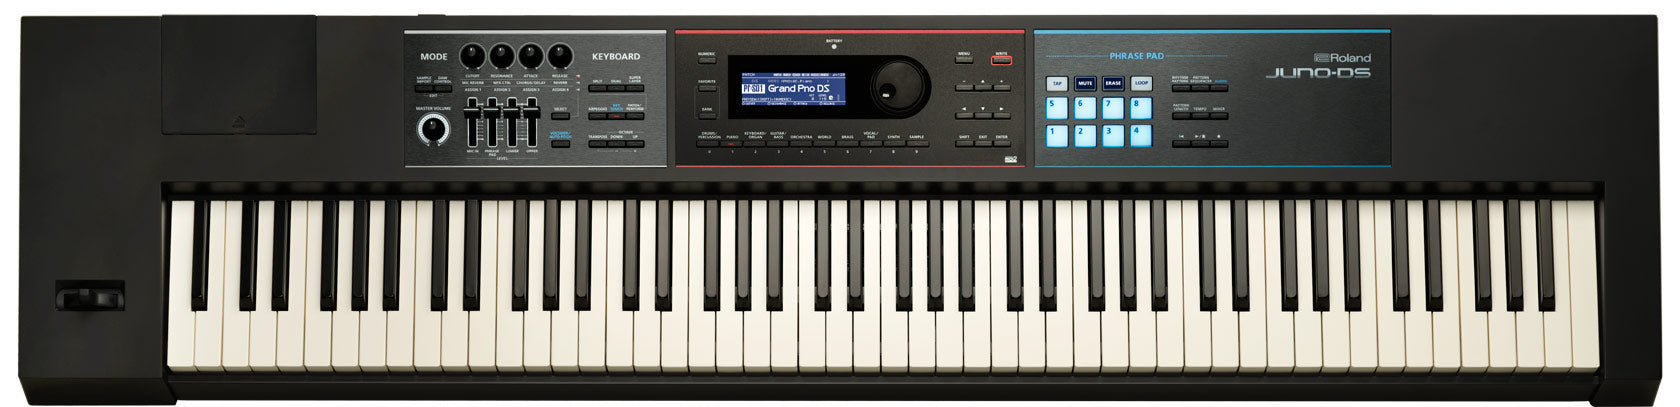 Roland JUNO-DS88 Synthesizer Keyboard Workstation (88-key)